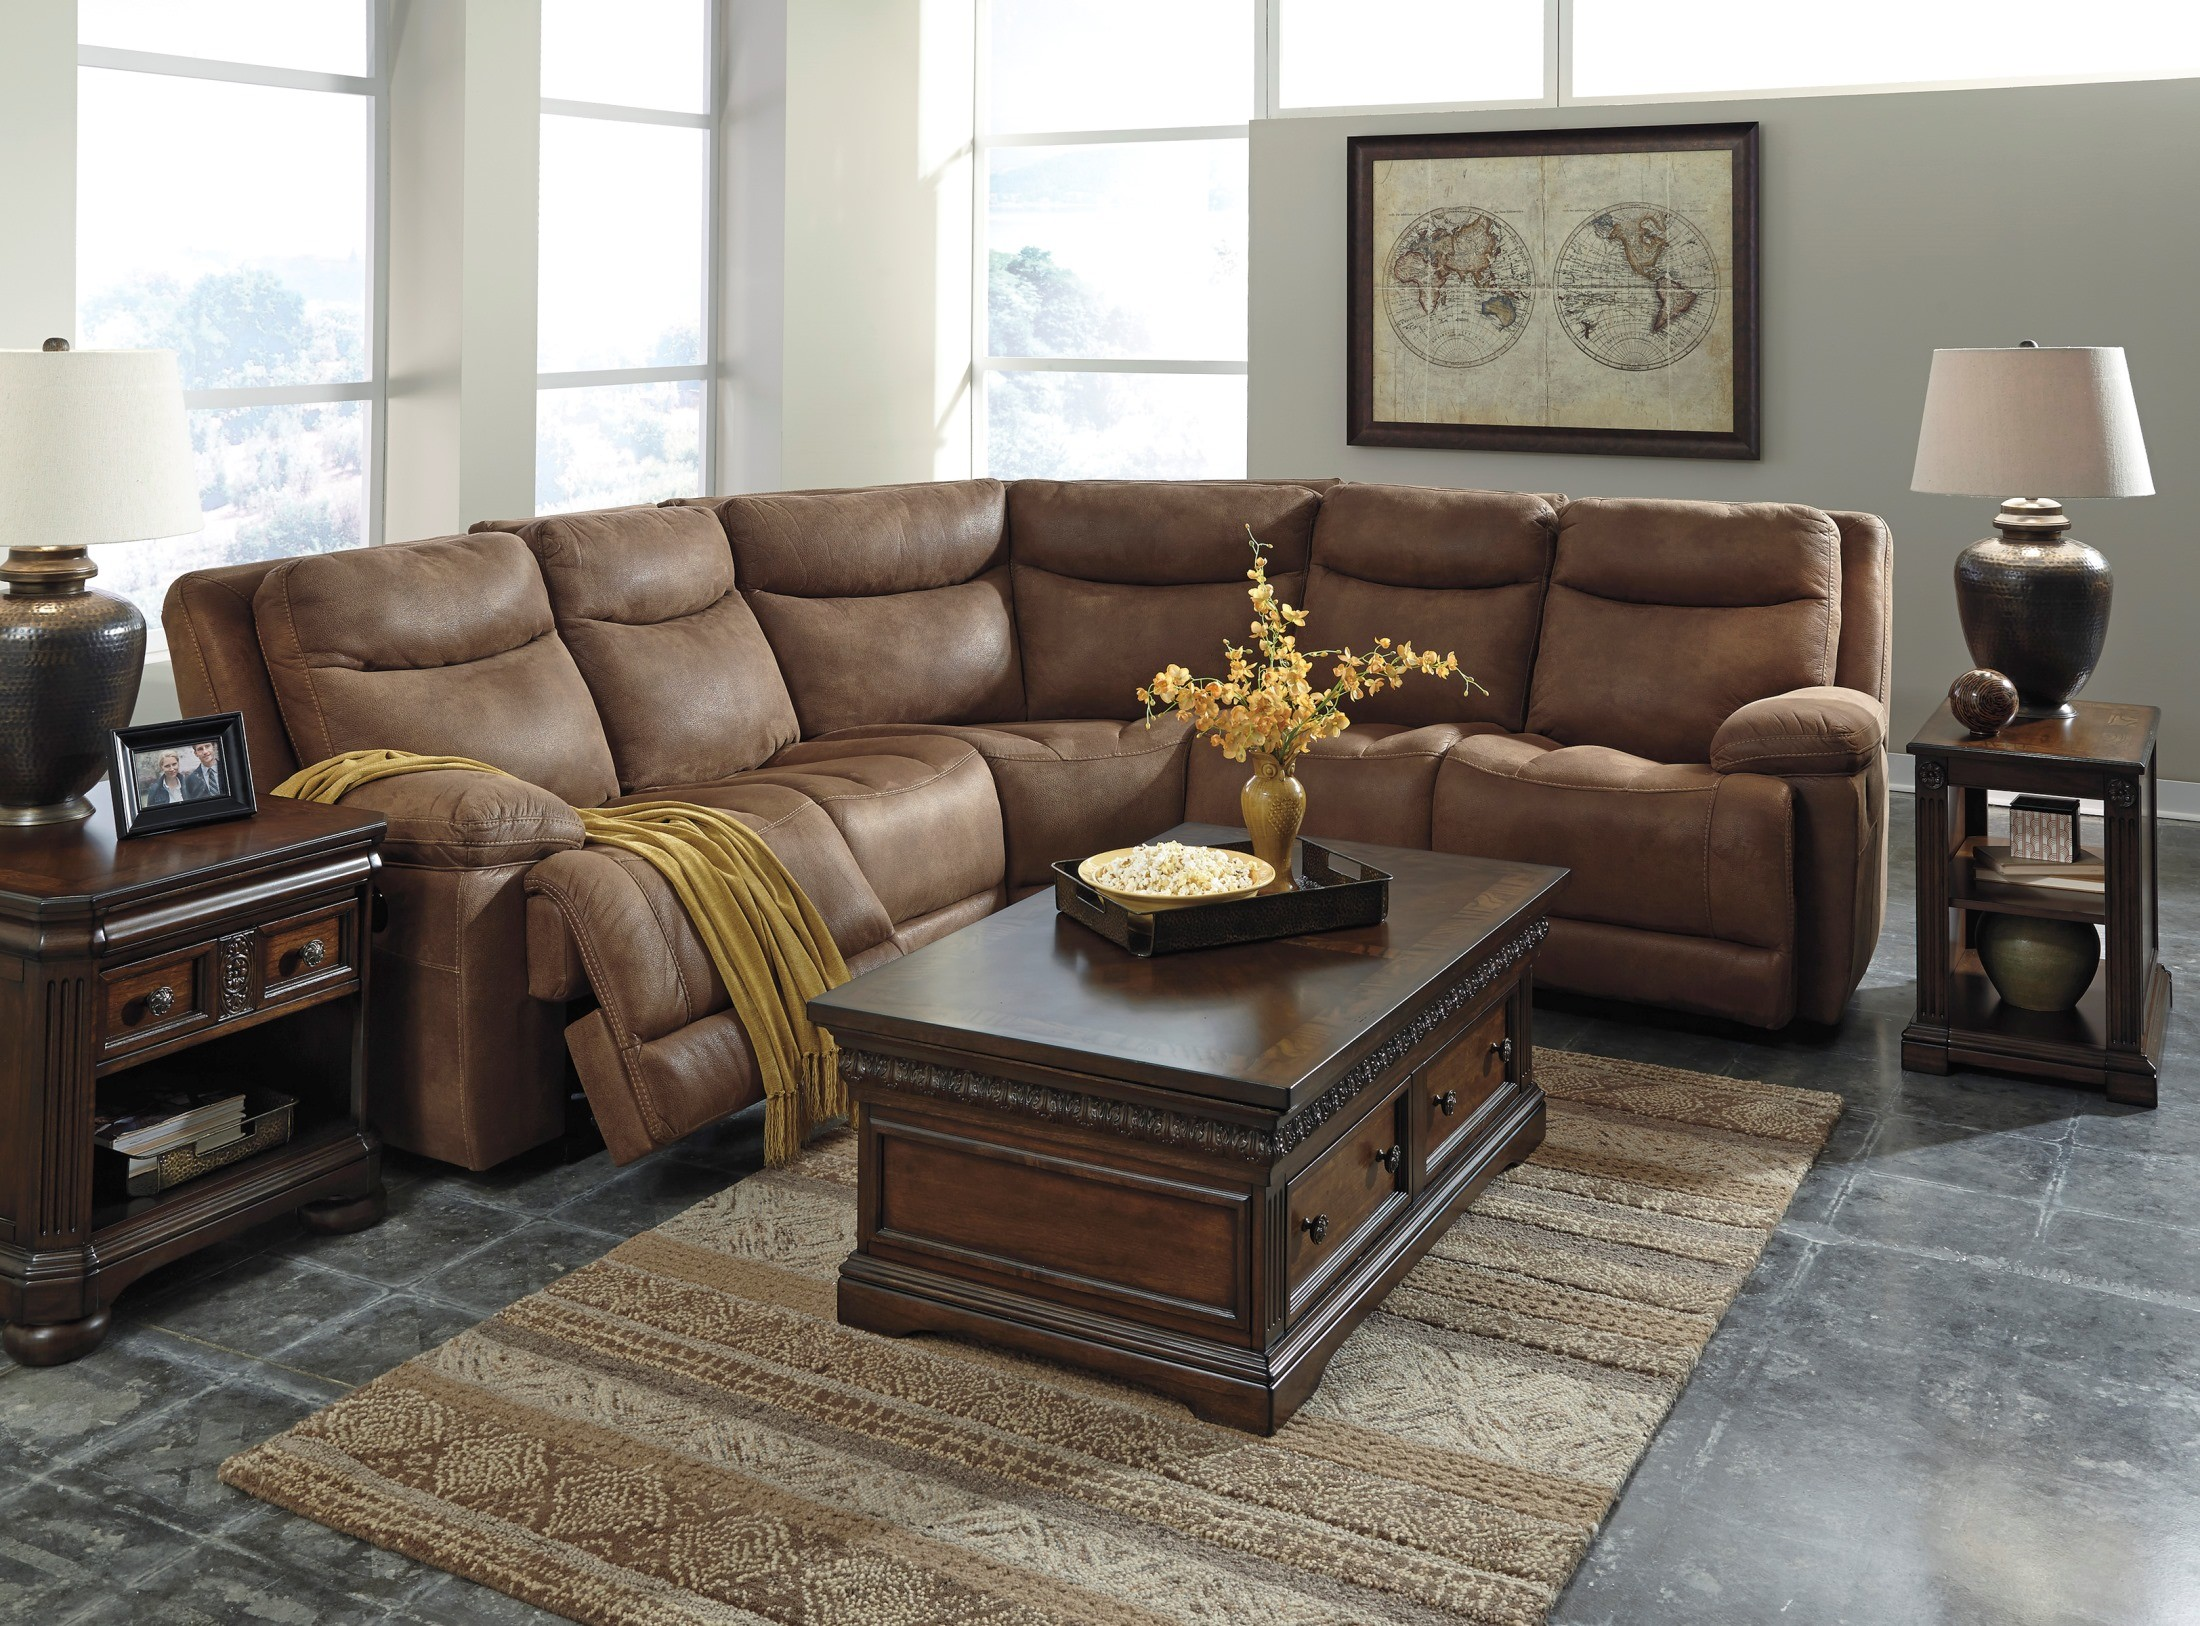 Valto Saddle Reclining Sectional from Ashley